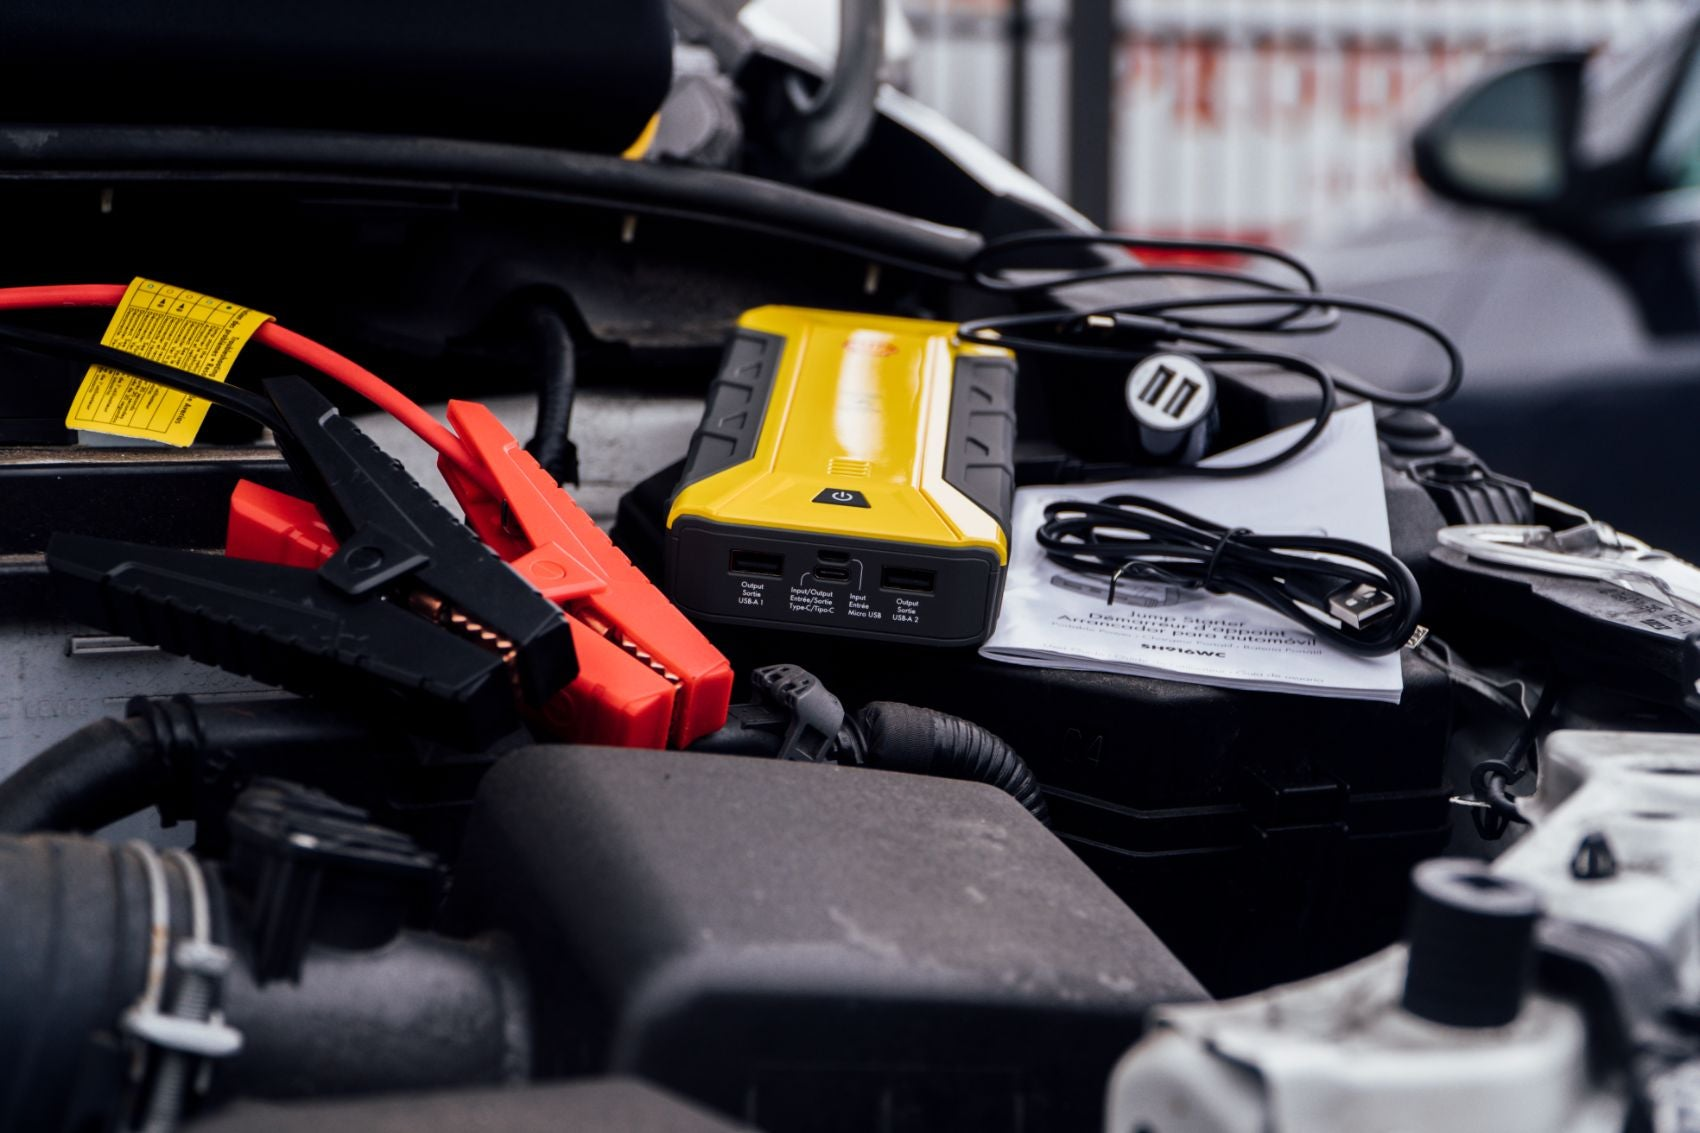 Shell 1200A Portable Jump Starter 17 - 1200A Shell Portable Jump Starter Review: How It Works & Should You Buy It?